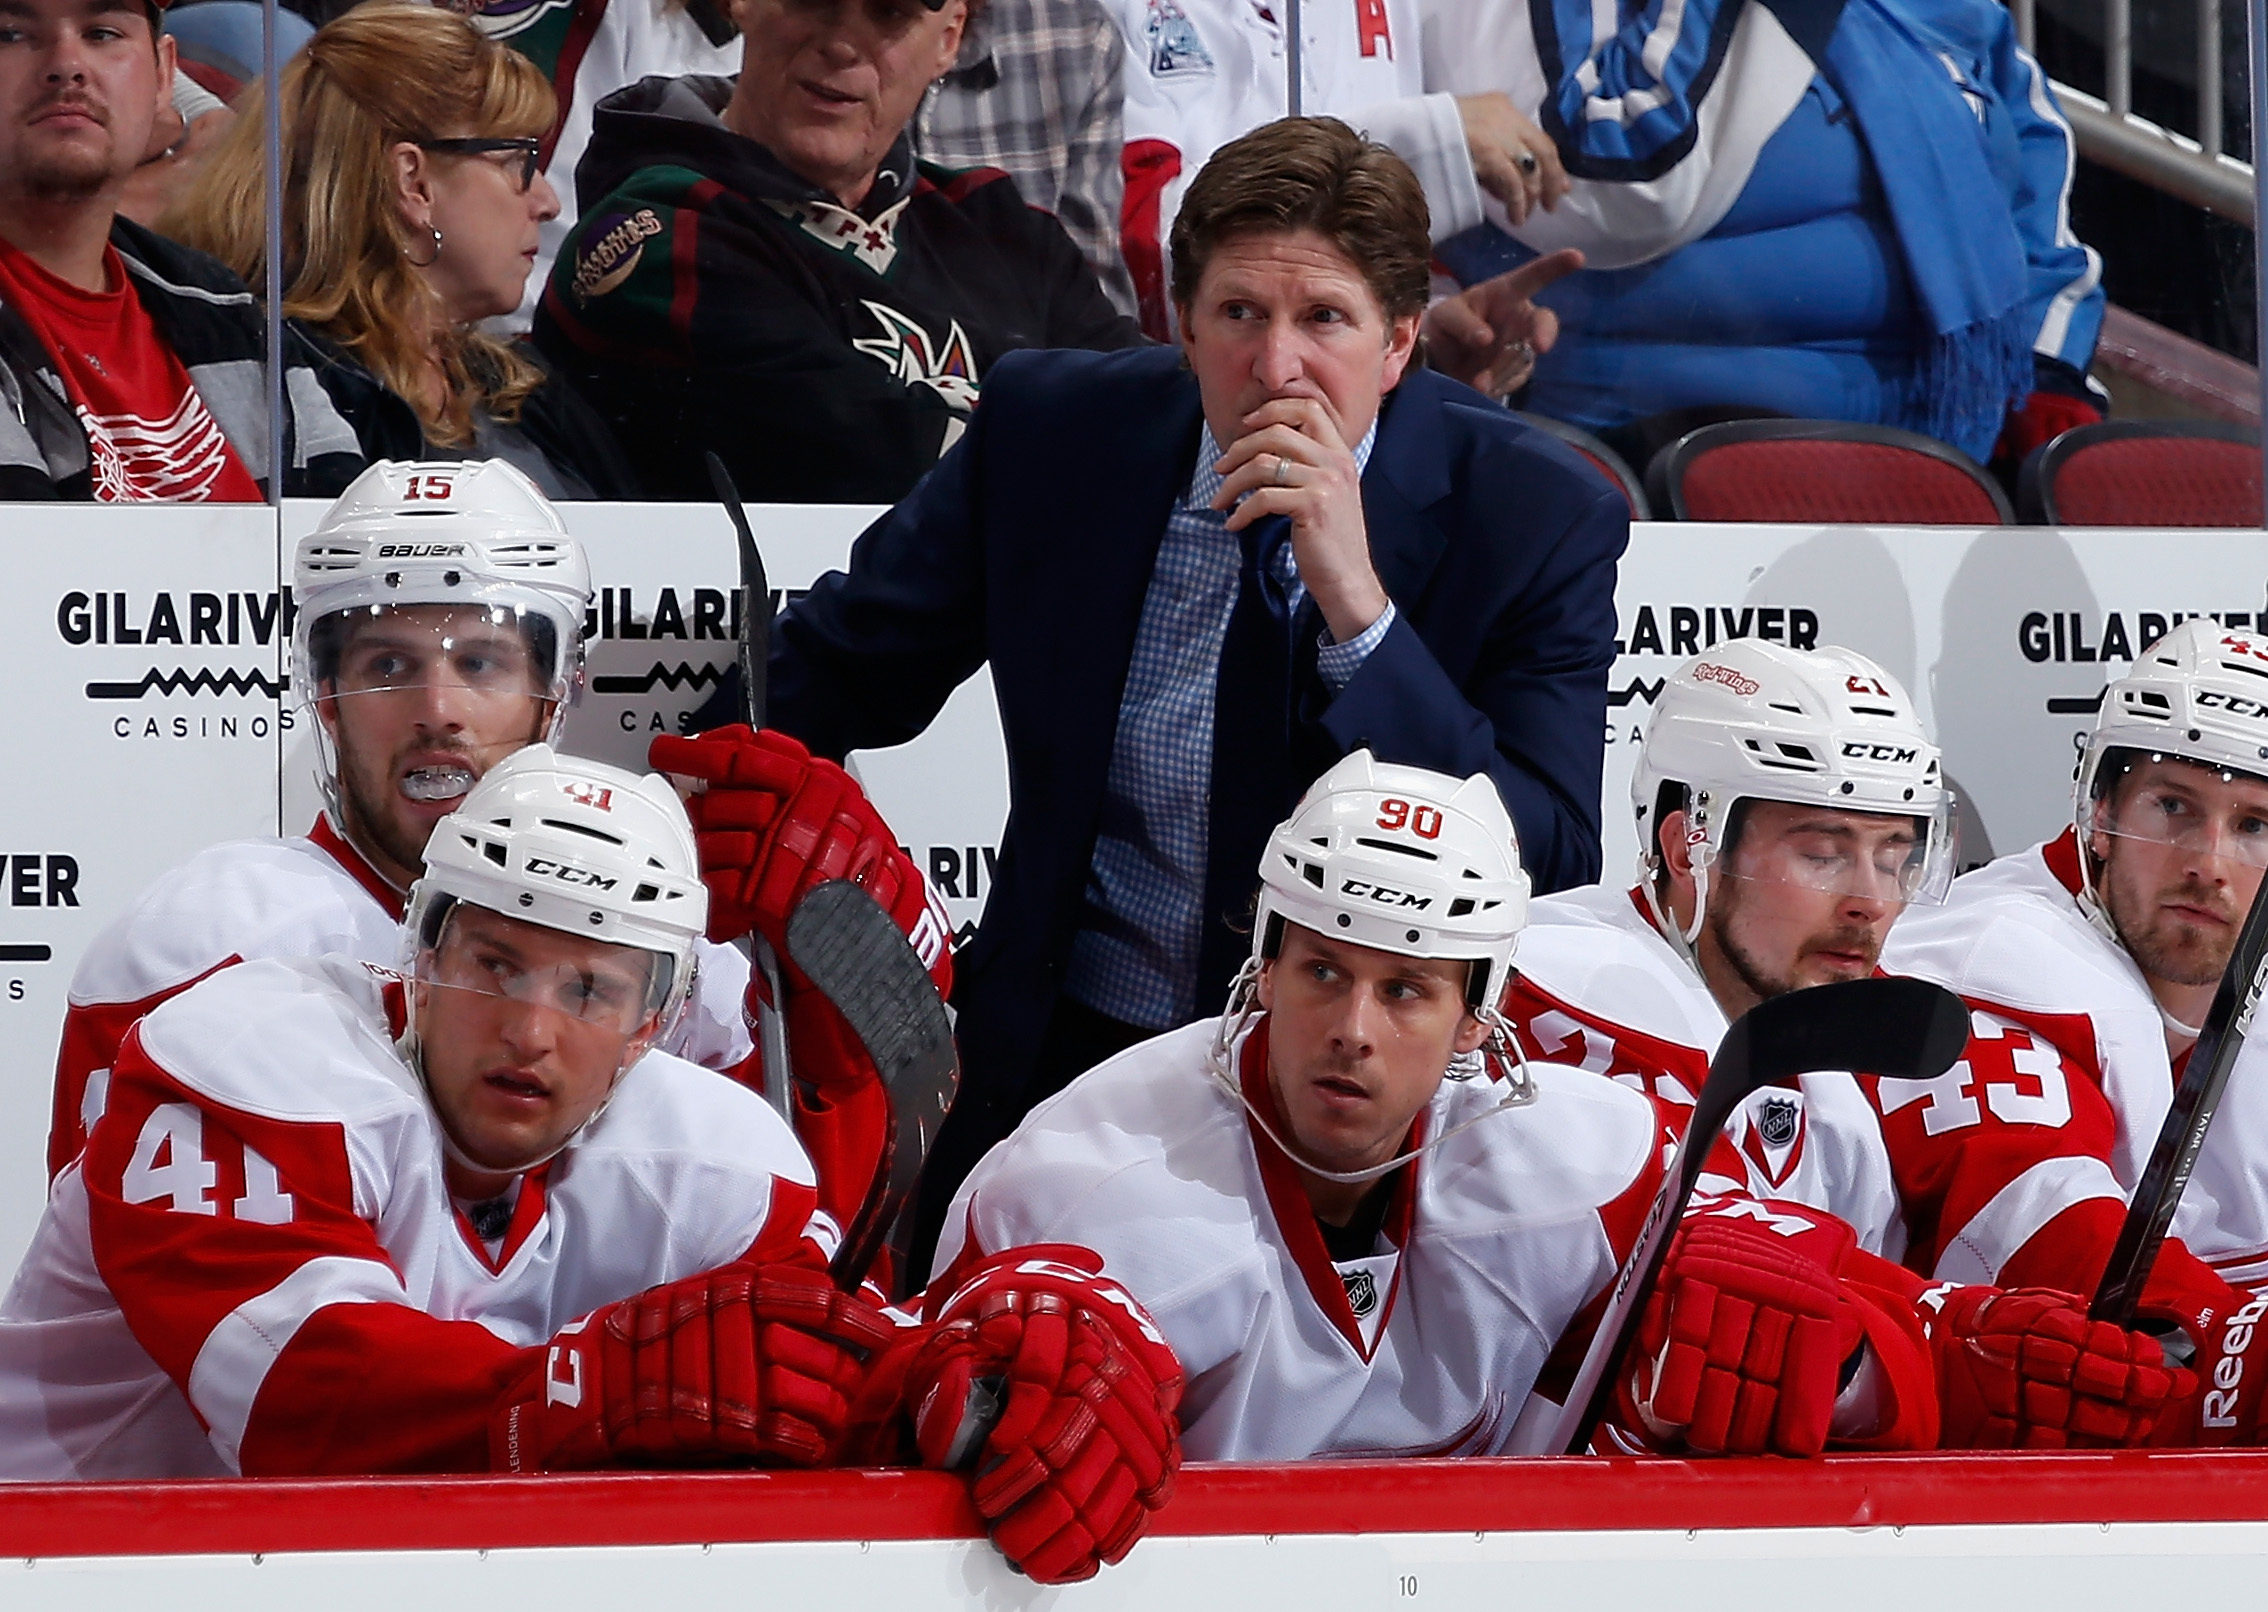 If the Sabres are serious about turning around the ship, columnist Bucky Gleason says they need to get Red Wings coach Mike Babcock aboard with an offer he can't turn down (Getty Images).